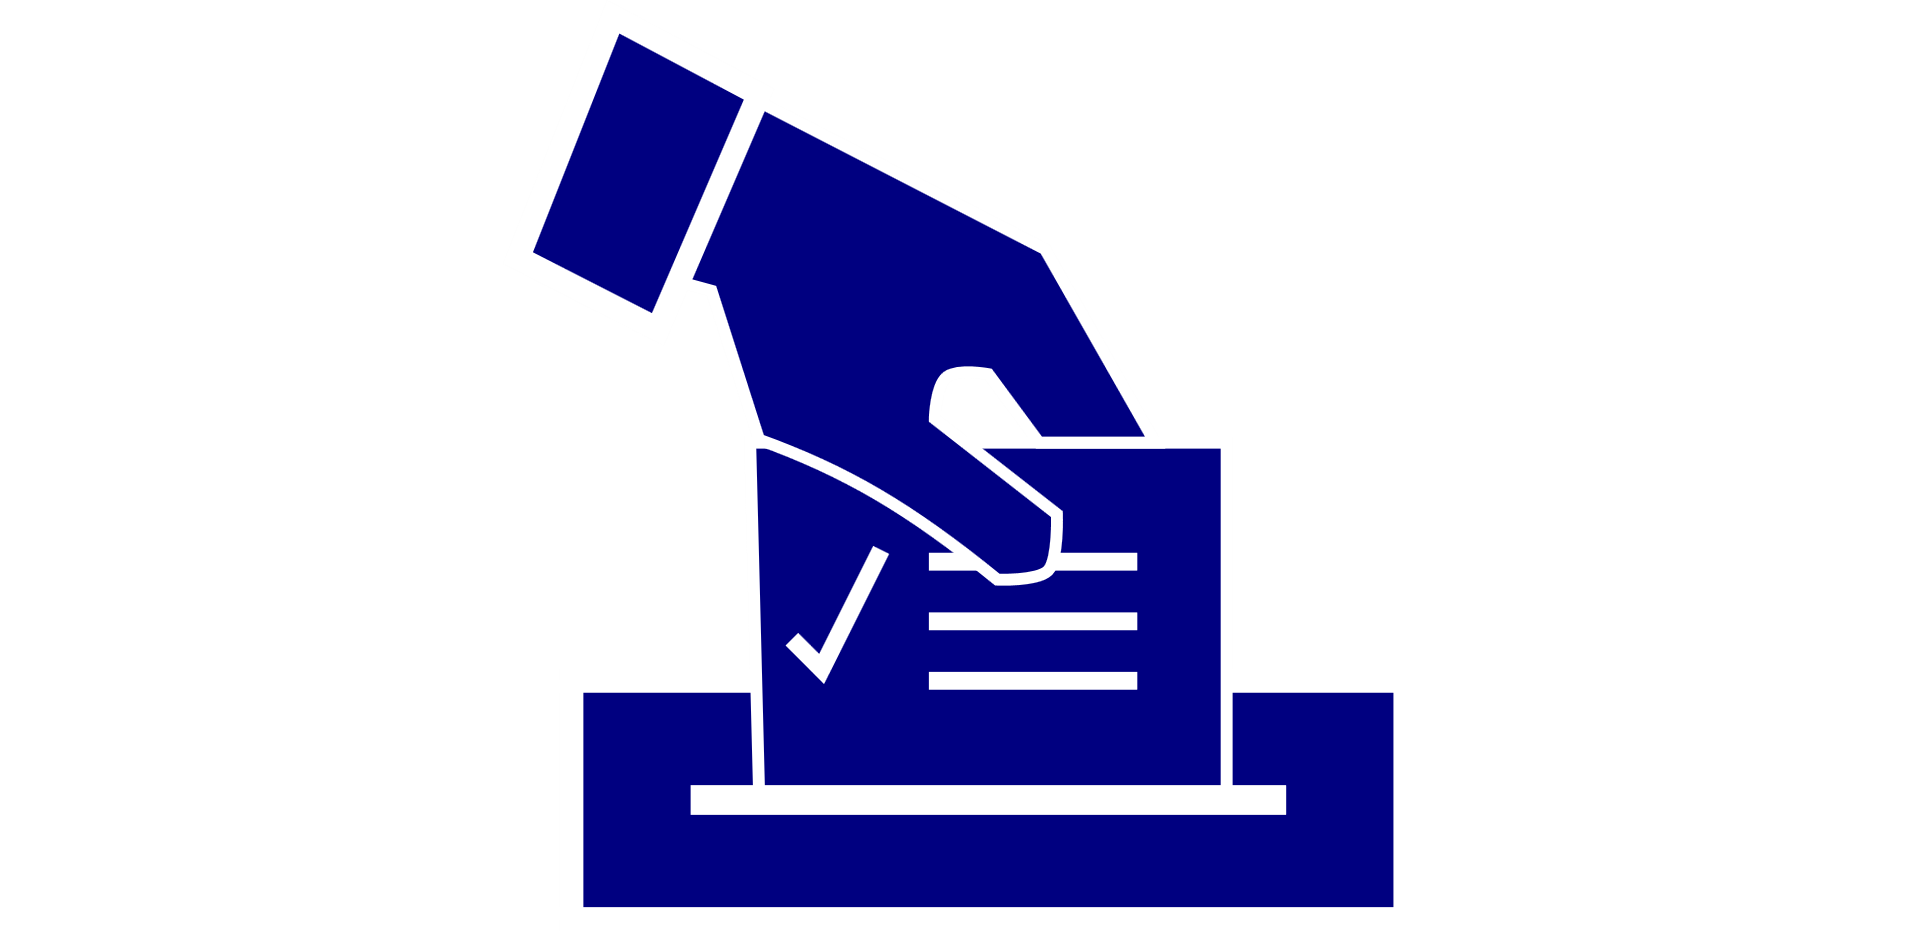 Voting clipart vote sign. United states kingdom democracy